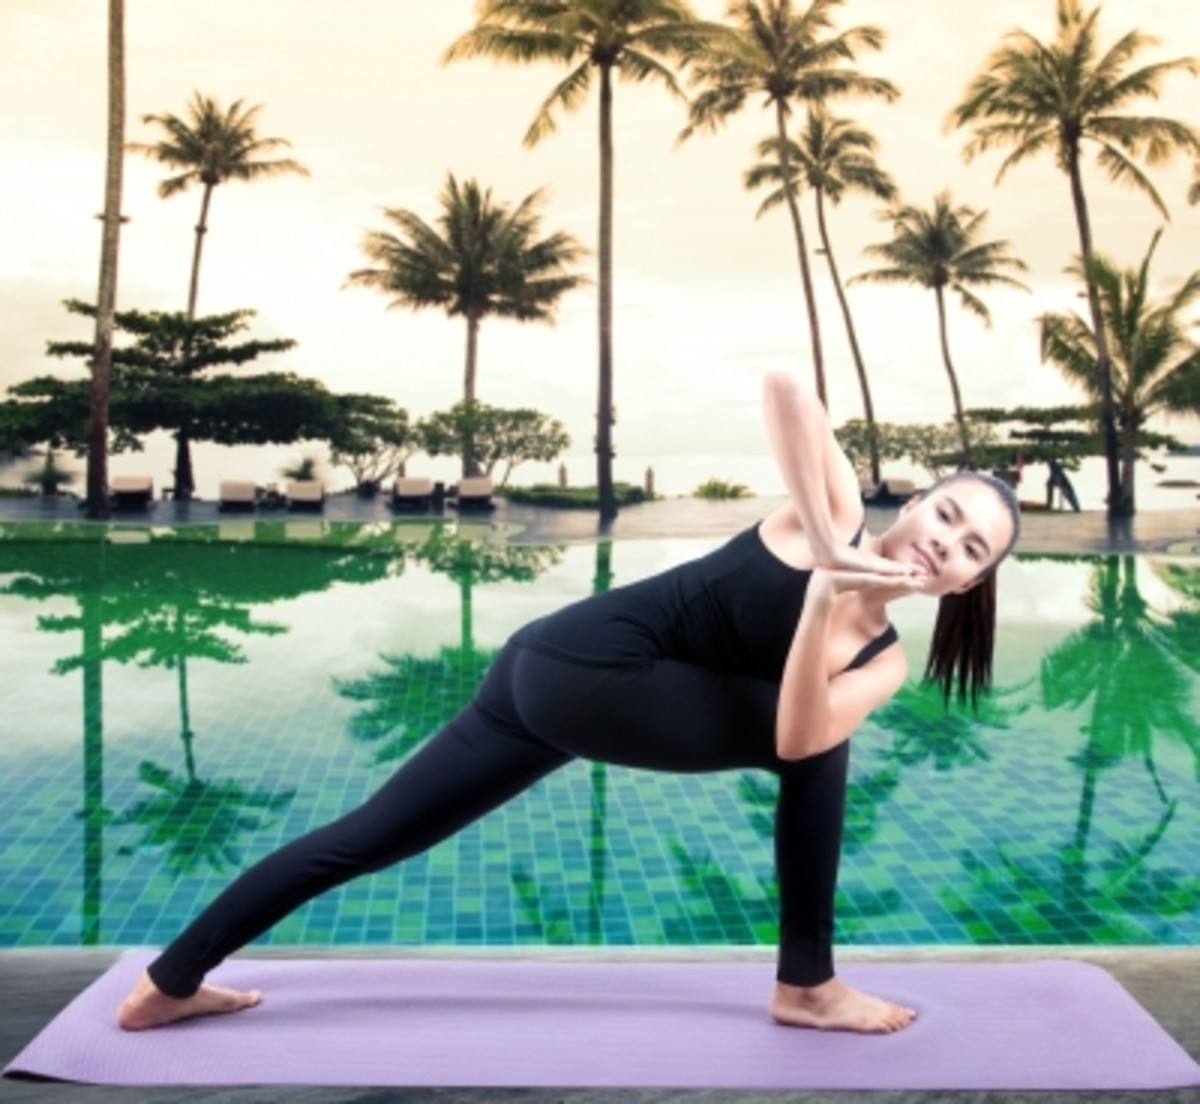 Yoga is an excellent exercise for anxiety